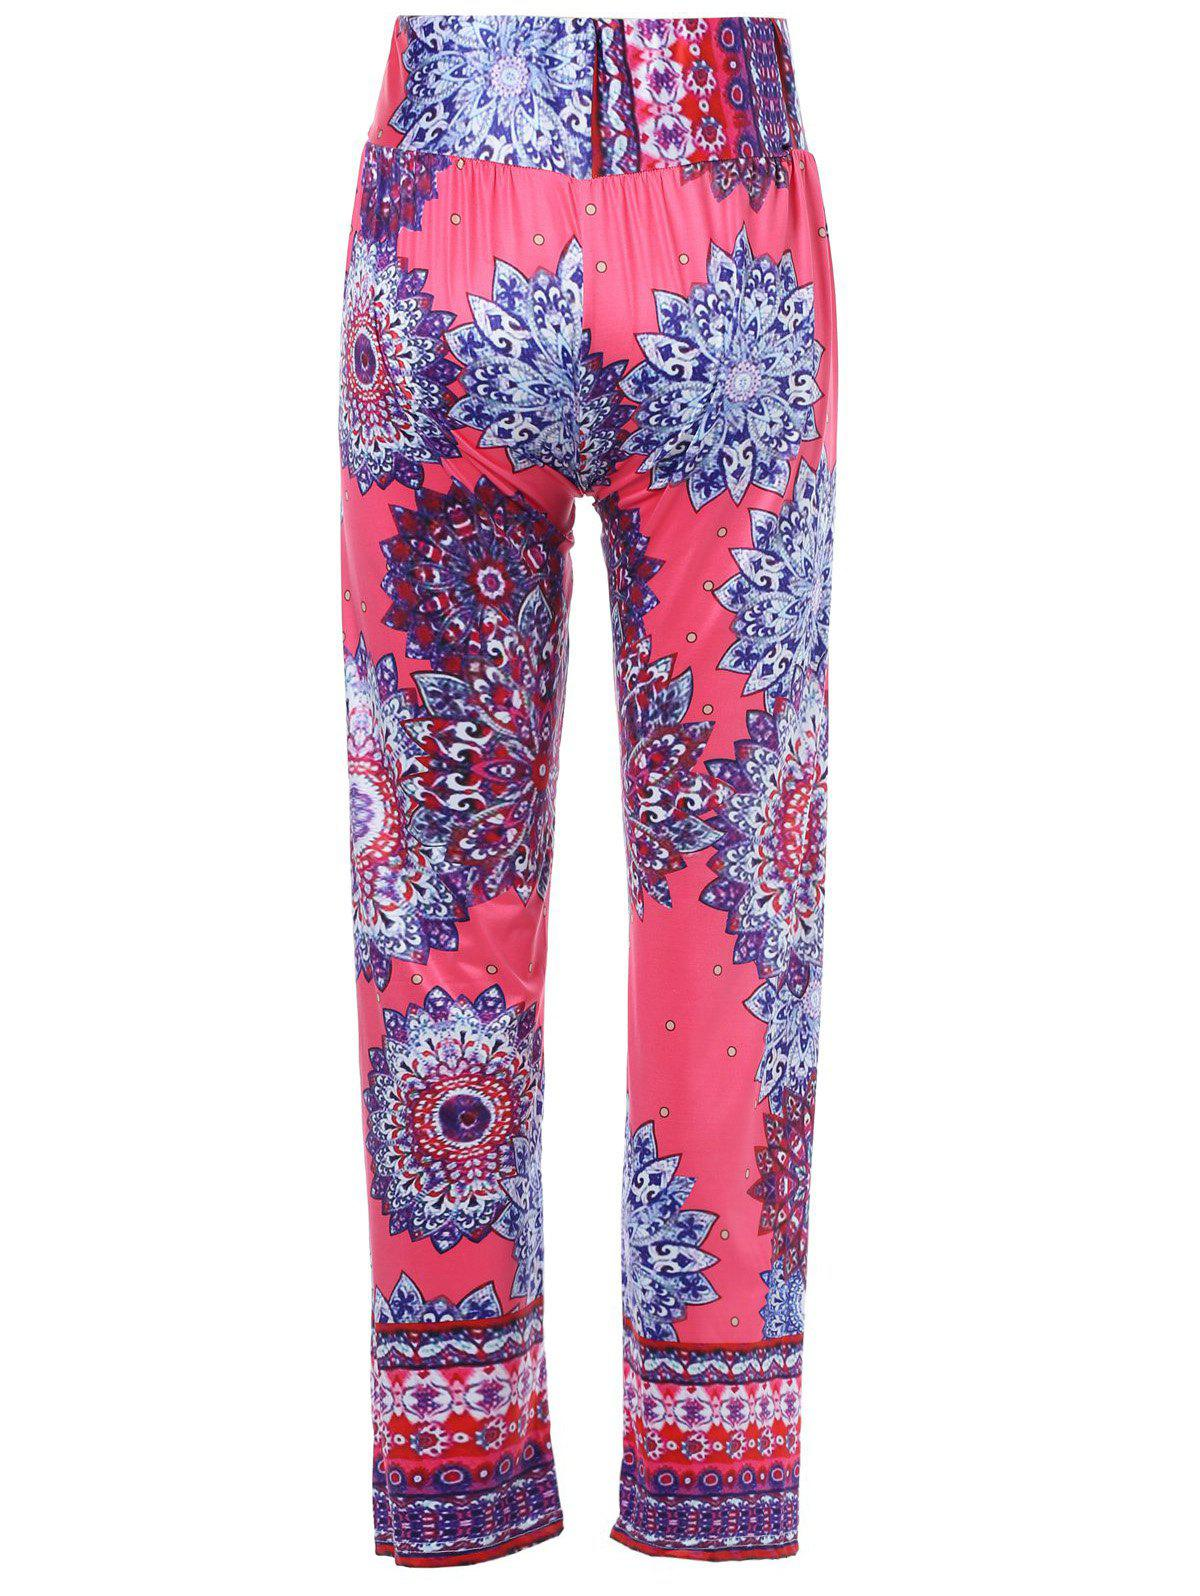 Stylish Mid-Waisted Wide Leg Printed Women's Exumas Pants - COLORMIX S